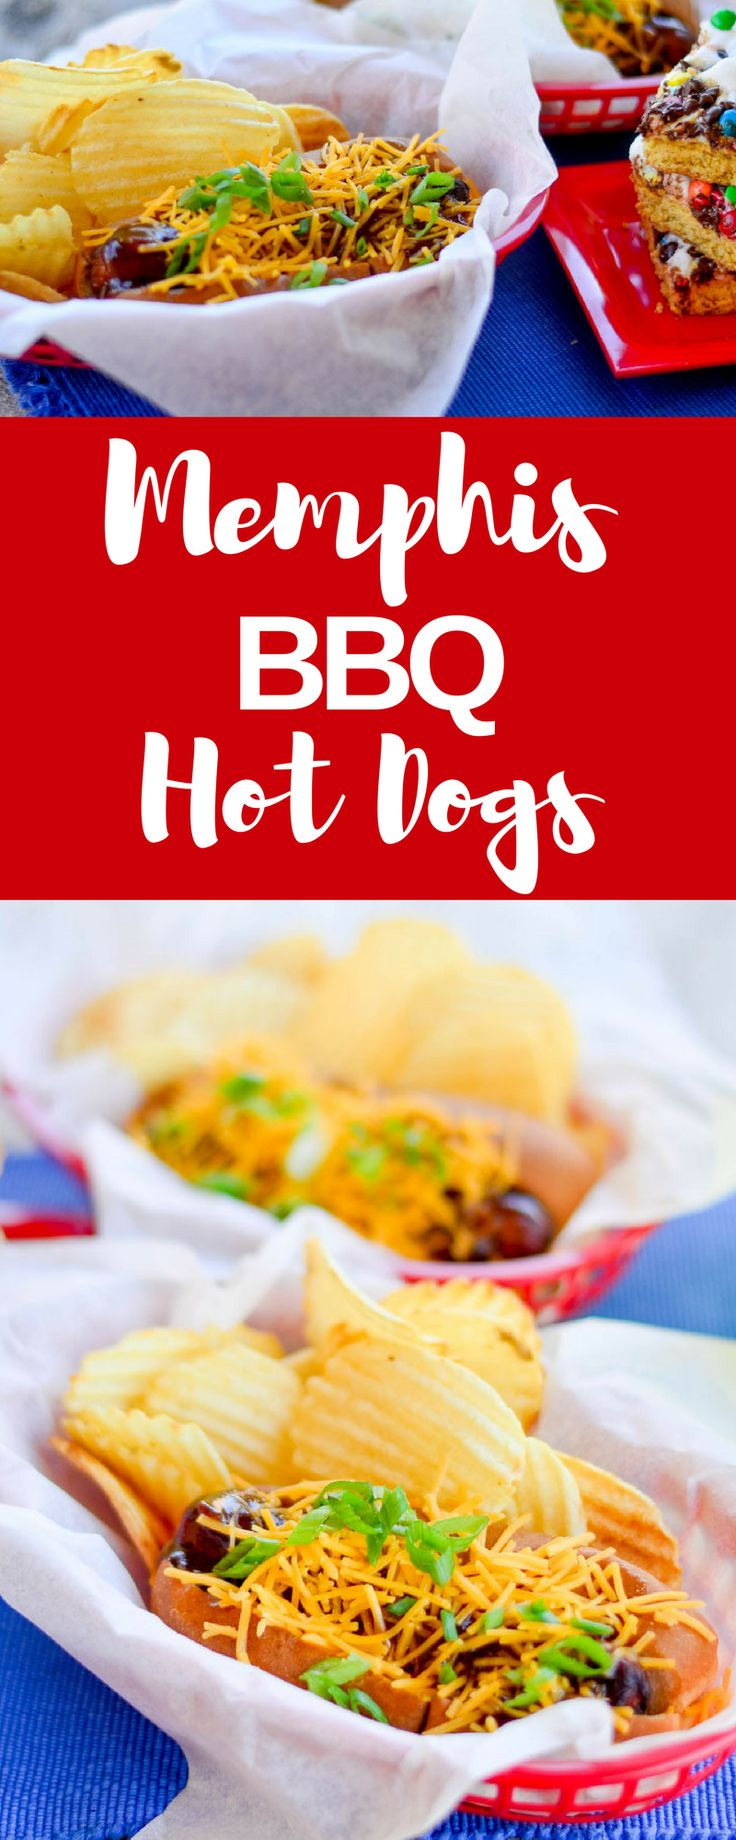 #ad Summer is almost over but you can still grill these Memphis Style Hot Dogs! Wrapped in bacon and slathered with BBQ sauce these are so good! Grabgowow.com has more delicious recipes! Walmart #grabgowow